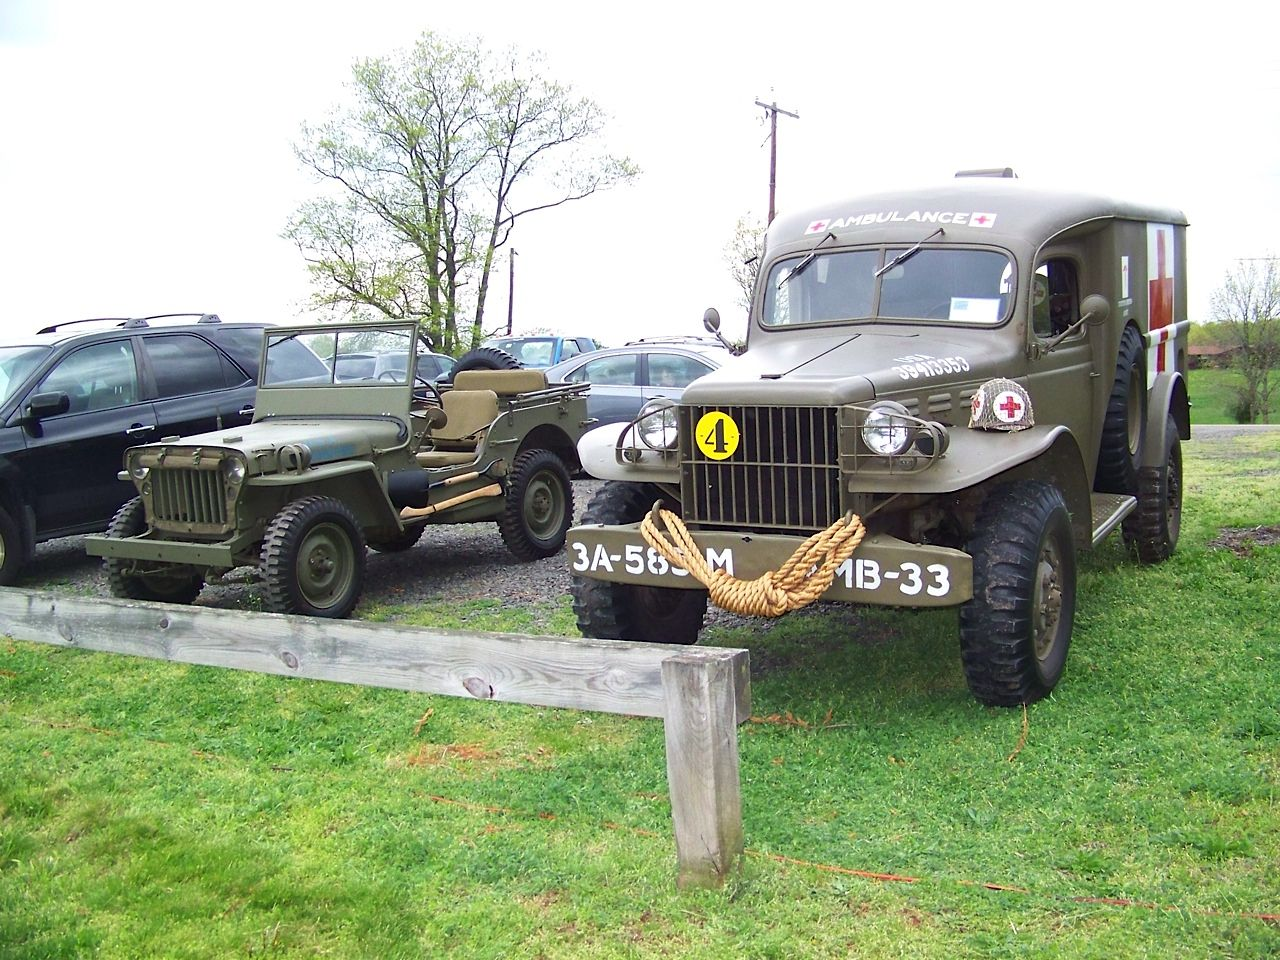 Dodge trucks in wwii - At The Ribbon Cutting Ceremony For The Montgomery Veteran S Memorial Nj Willys 1942 Jeep Wc54 1944 Dodge Usarmy Ambulance Wwii Ww2 Worldwartwo